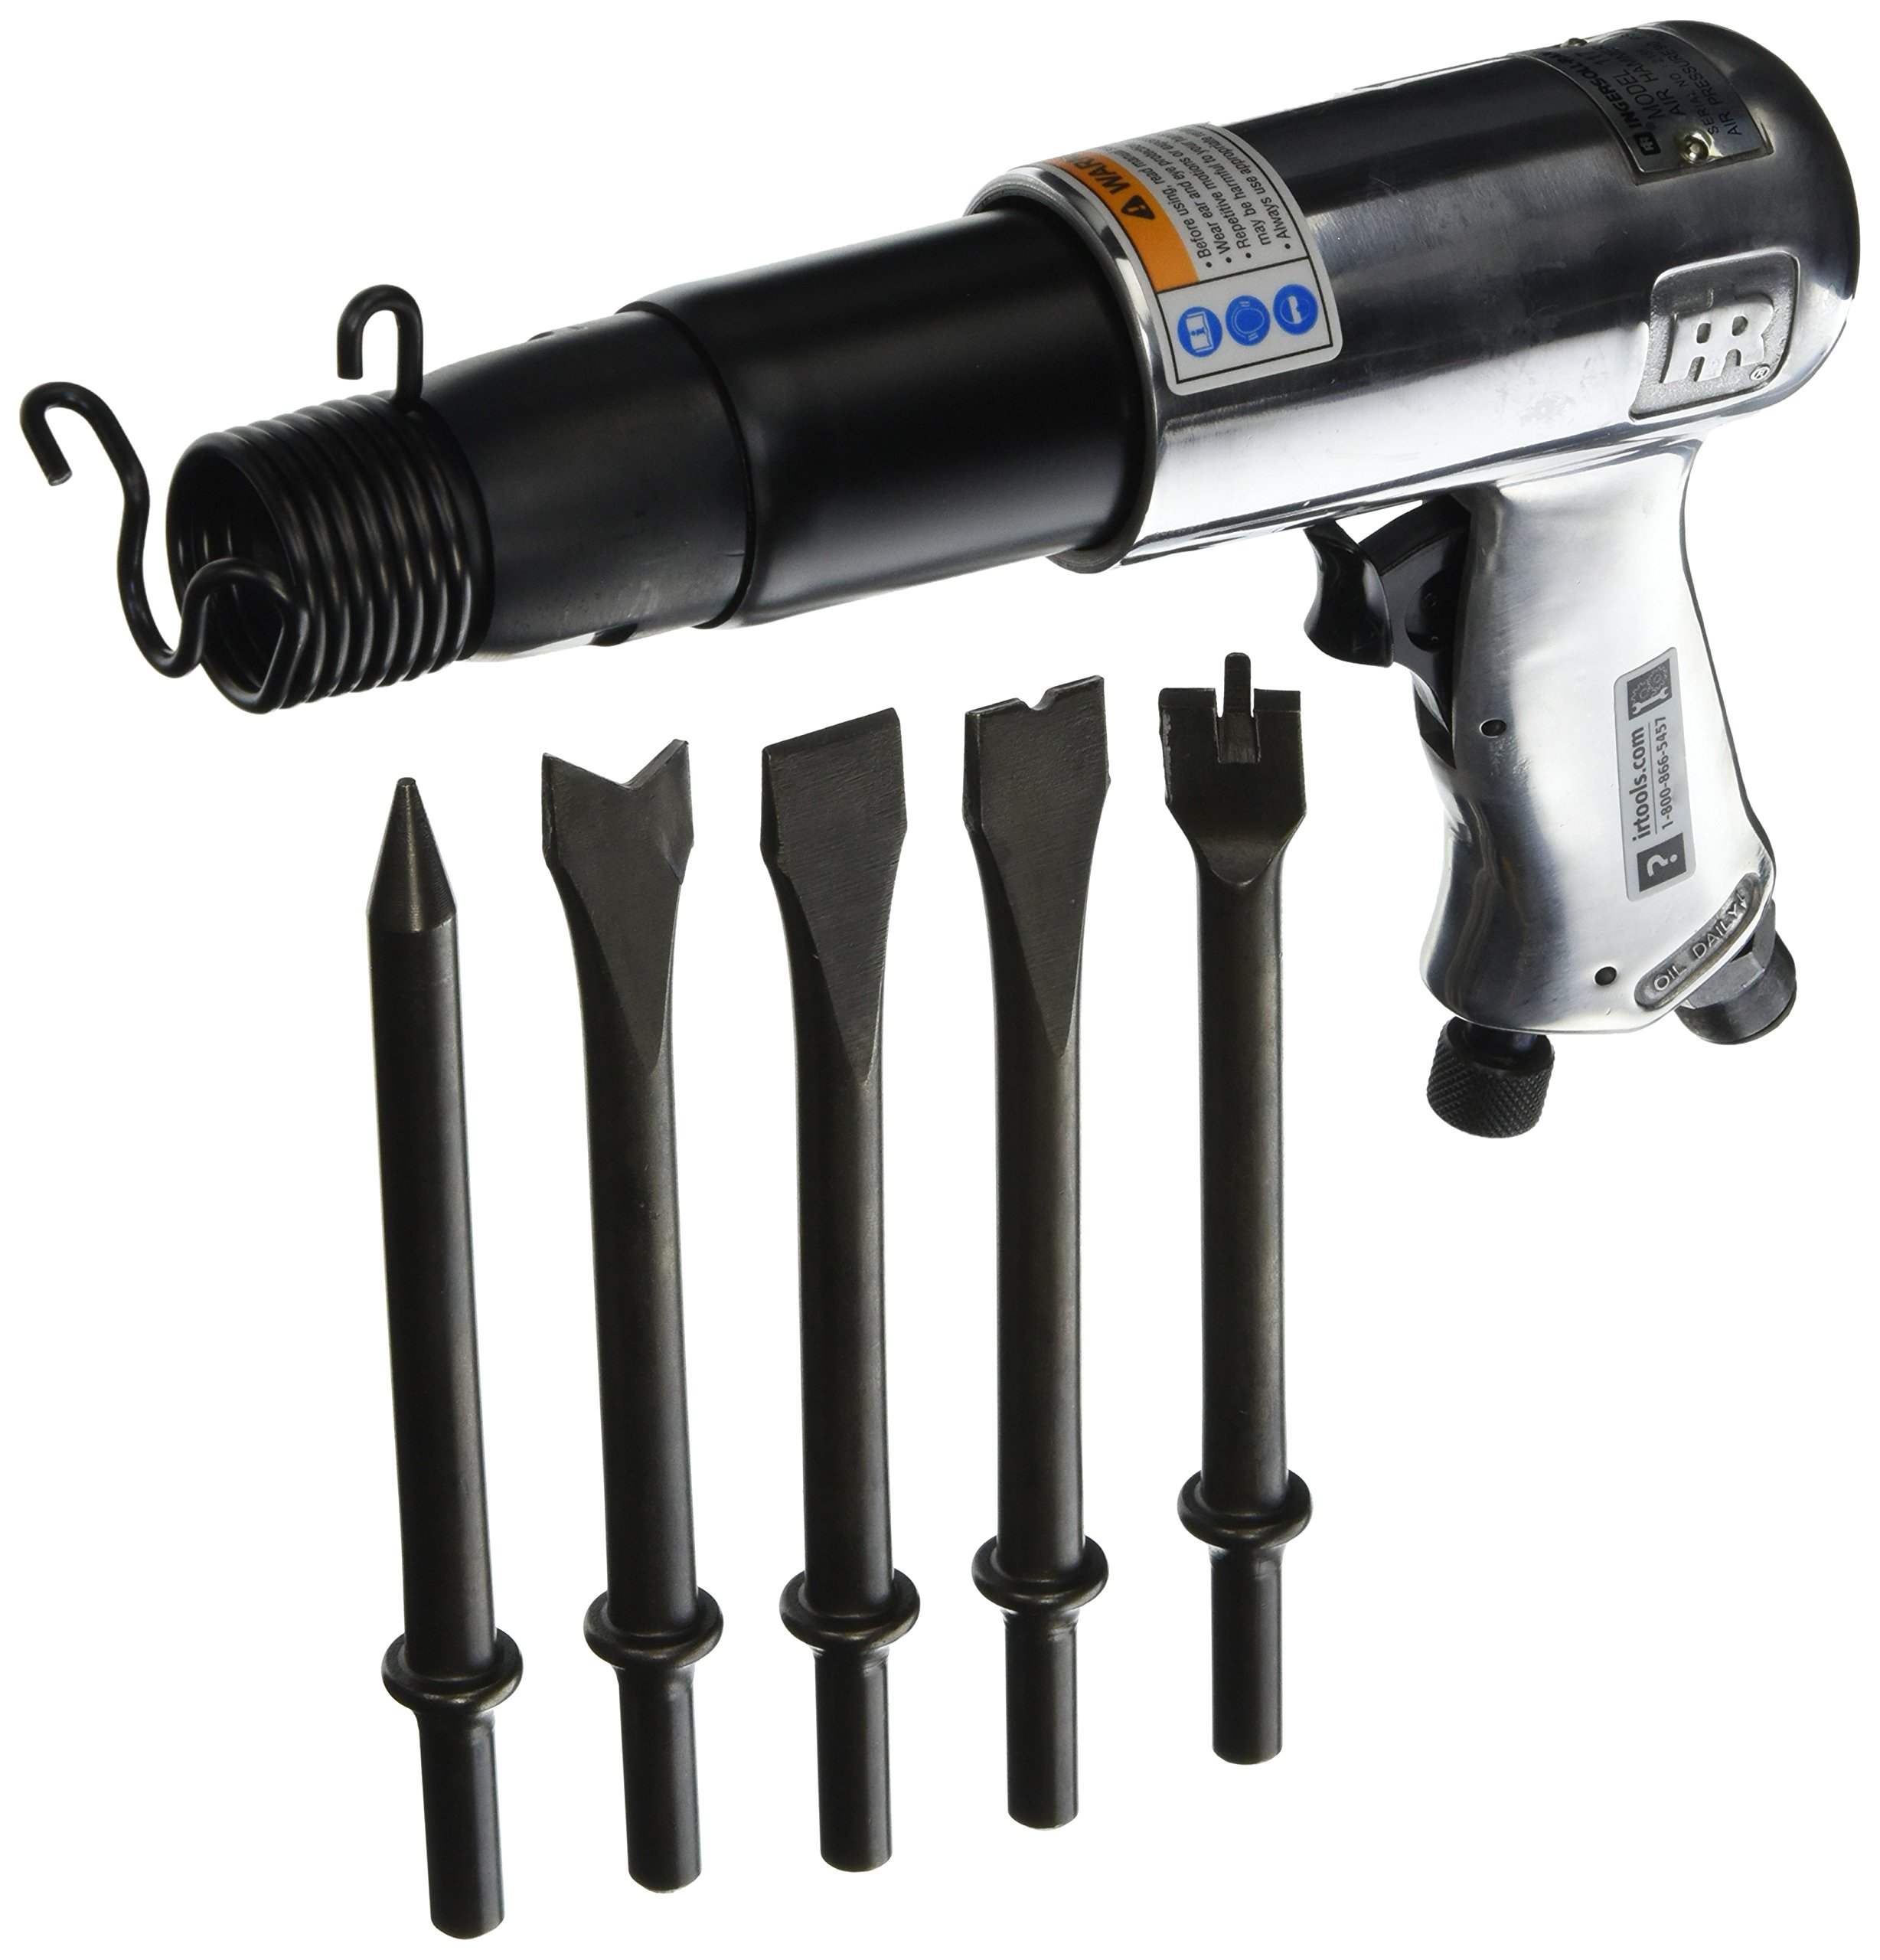 Ingersoll-Rand 117K 2,000 Blows-Per-Minute Standard Duty Pnuematic Hammer with 5 Chisel Set by Ingersoll-Rand